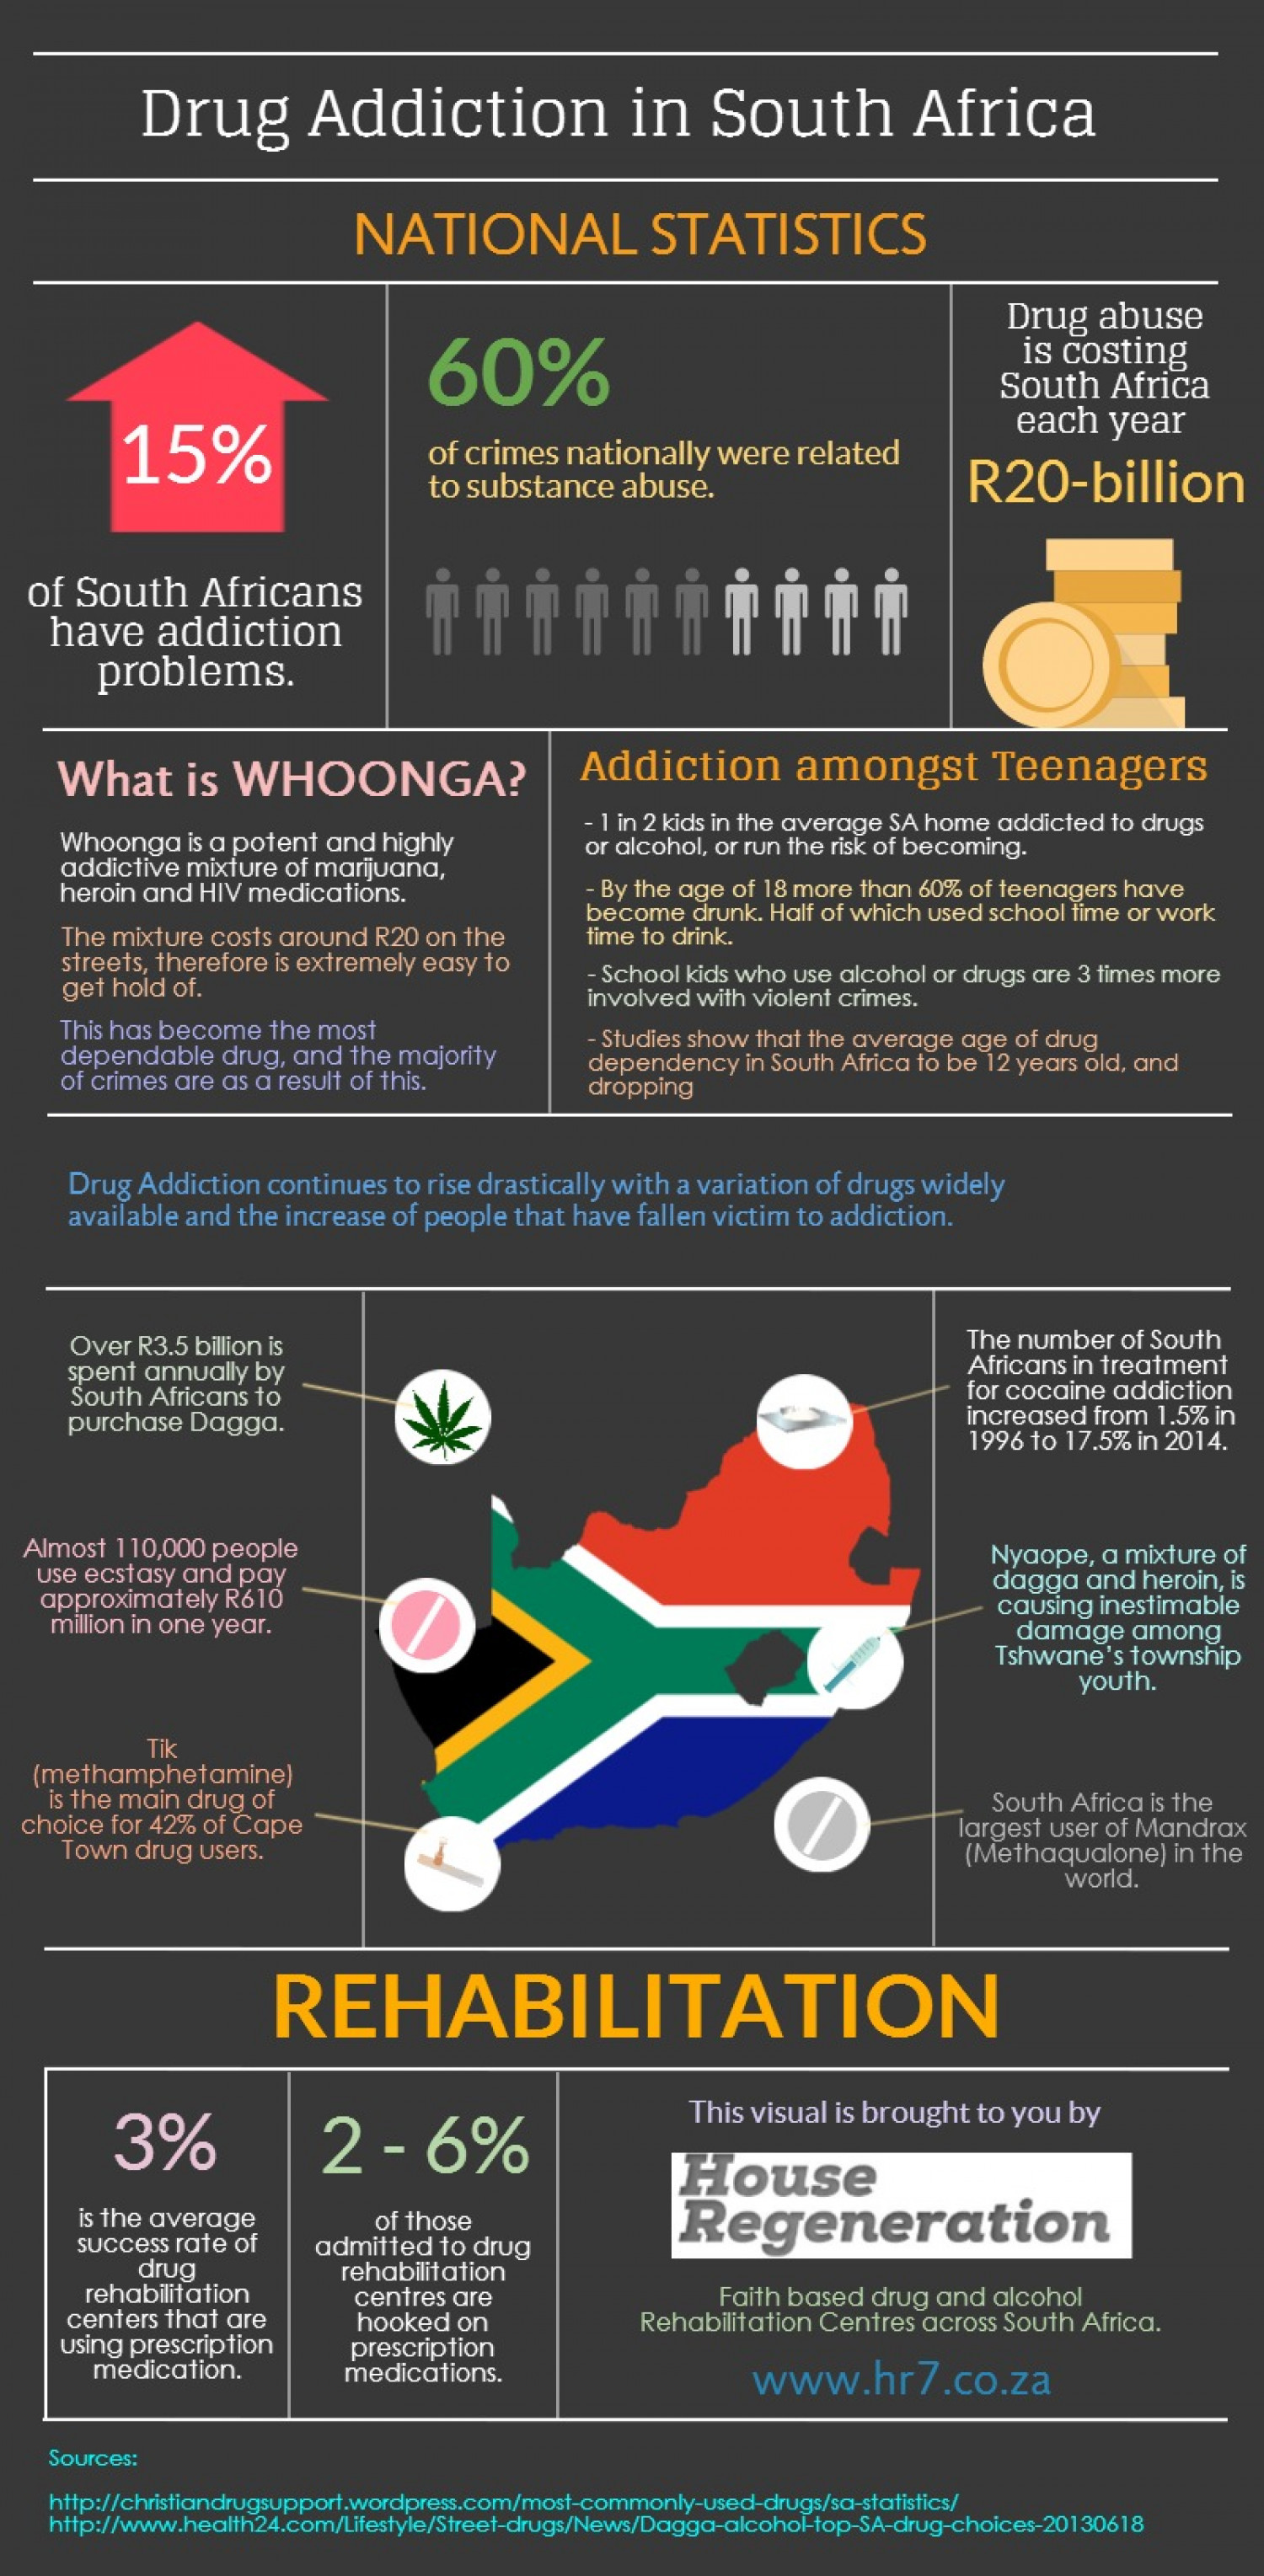 Drug Addiction in South Africa 2014 Infographic